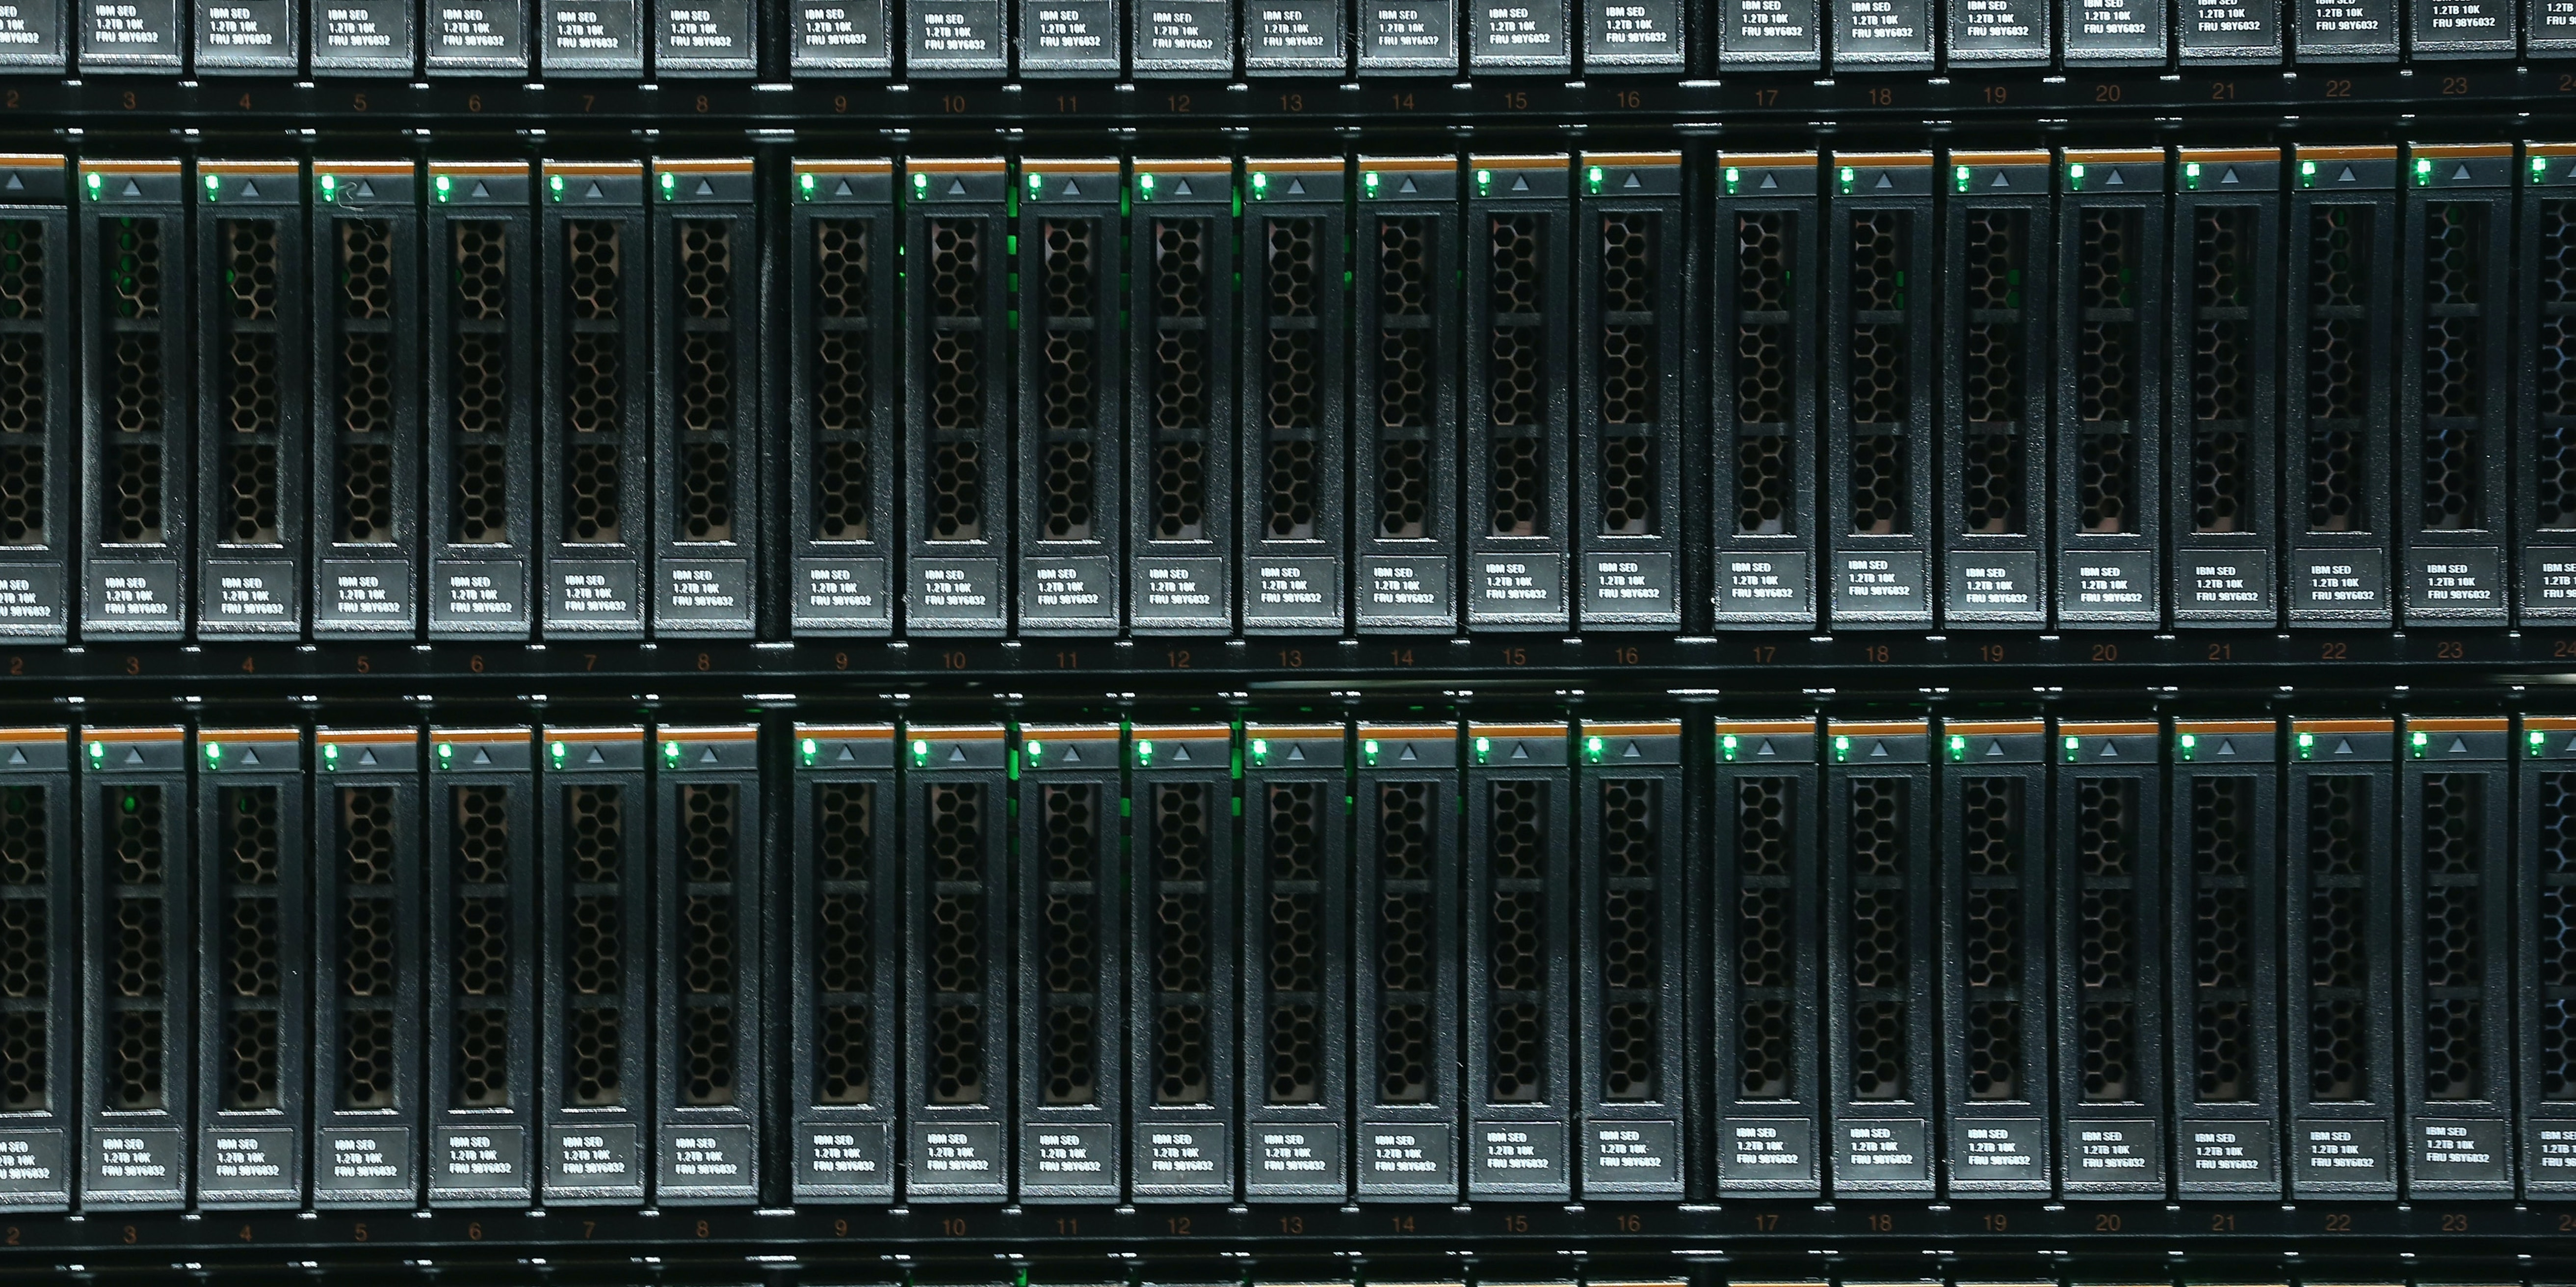 Units for storing digital data lie plugged into an IBM System Storage DS8870 mainframe at the 2015 CeBIT technology trade fair on March 16, 2015 in Hanover, Germany. China is this year's CeBIT partner. CeBIT is the world's largest tech fair and will be open from March 16 through March 20.